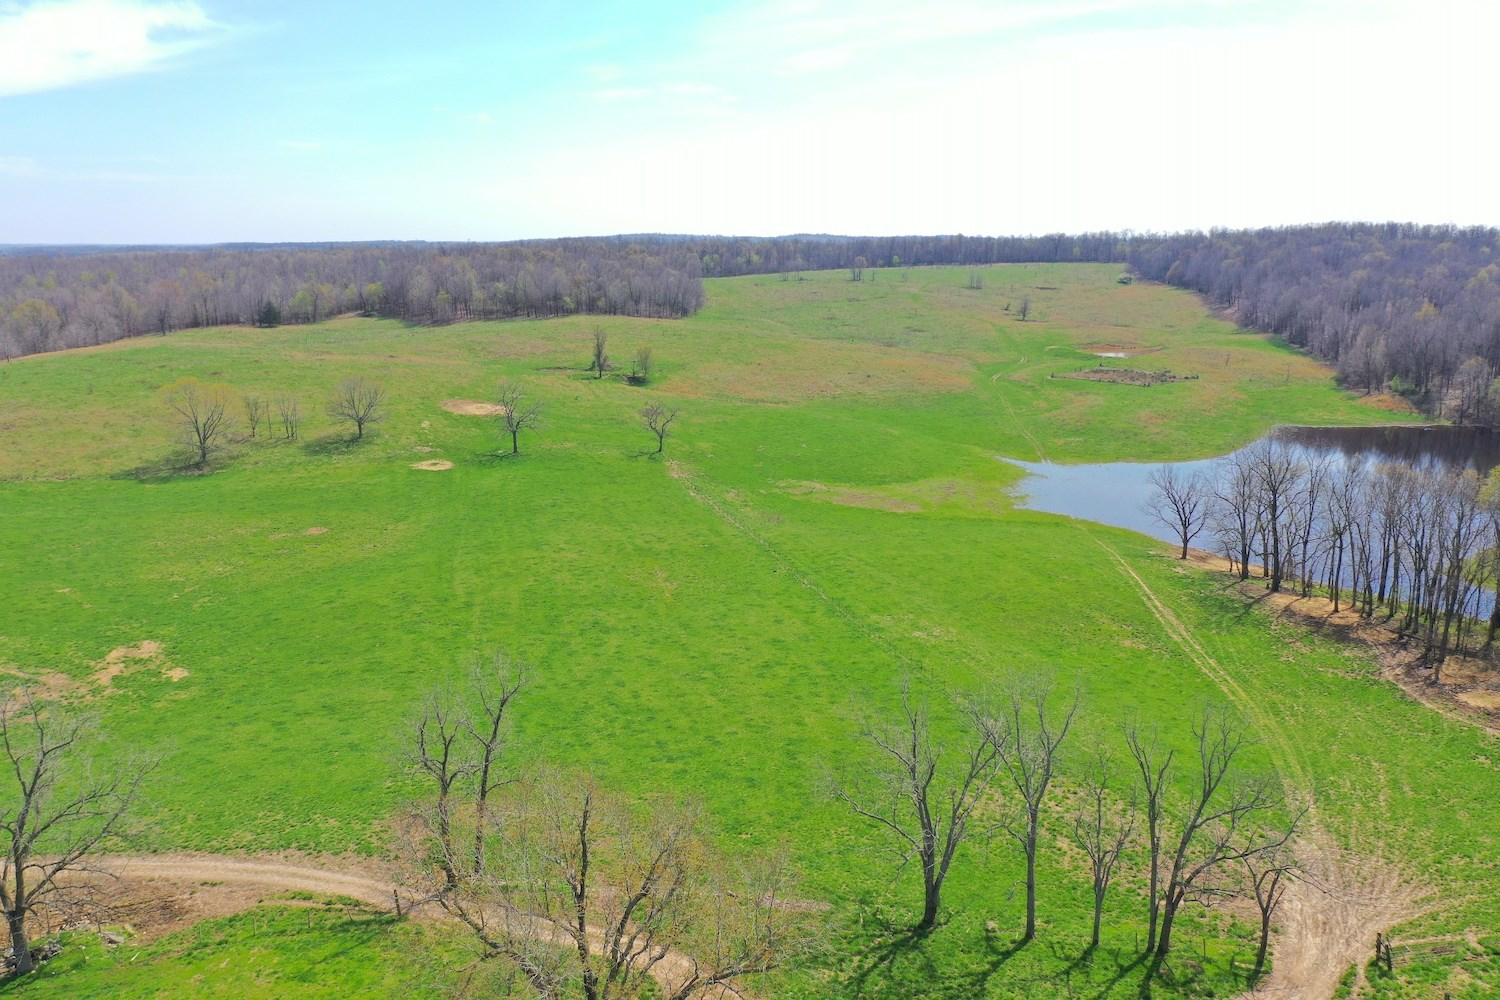 Farm for Sale in the Ozarks